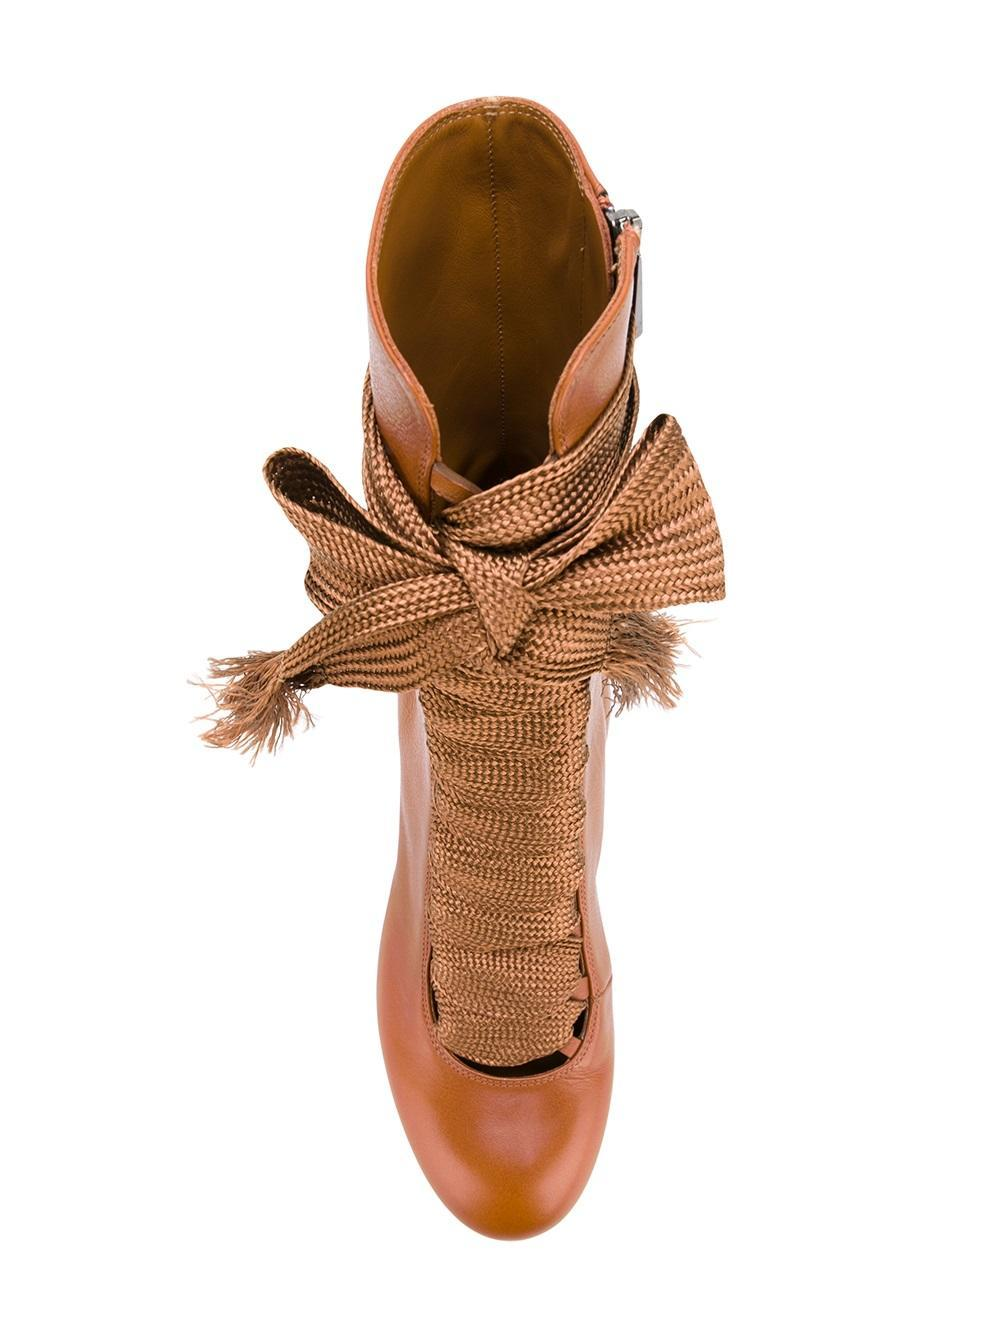 Chloé Leather Chloé 'harper' Boots in Brown